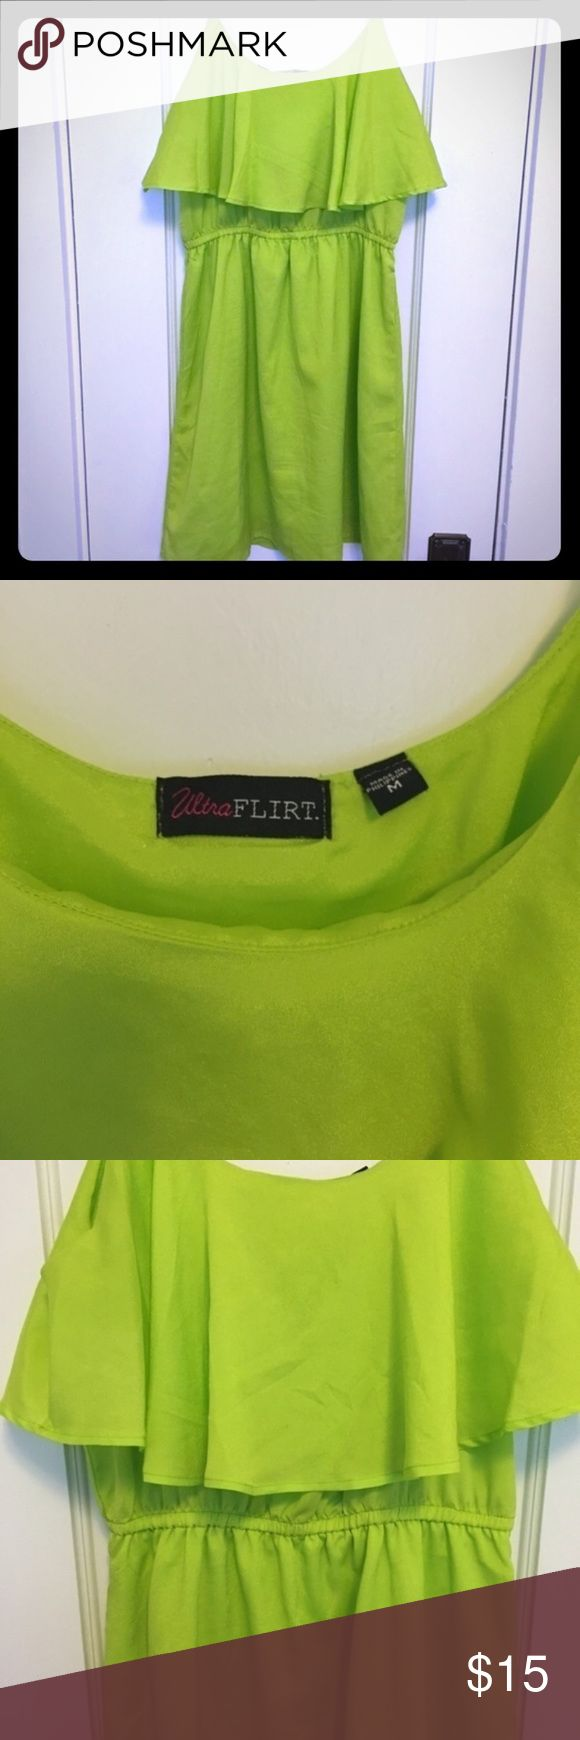 Neon green dress Super cute neon green dress. Worn once to the beach and once on a date. Great condition. Light fabric. Perfect for a sunny day! Ultra Flirt Dresses Midi